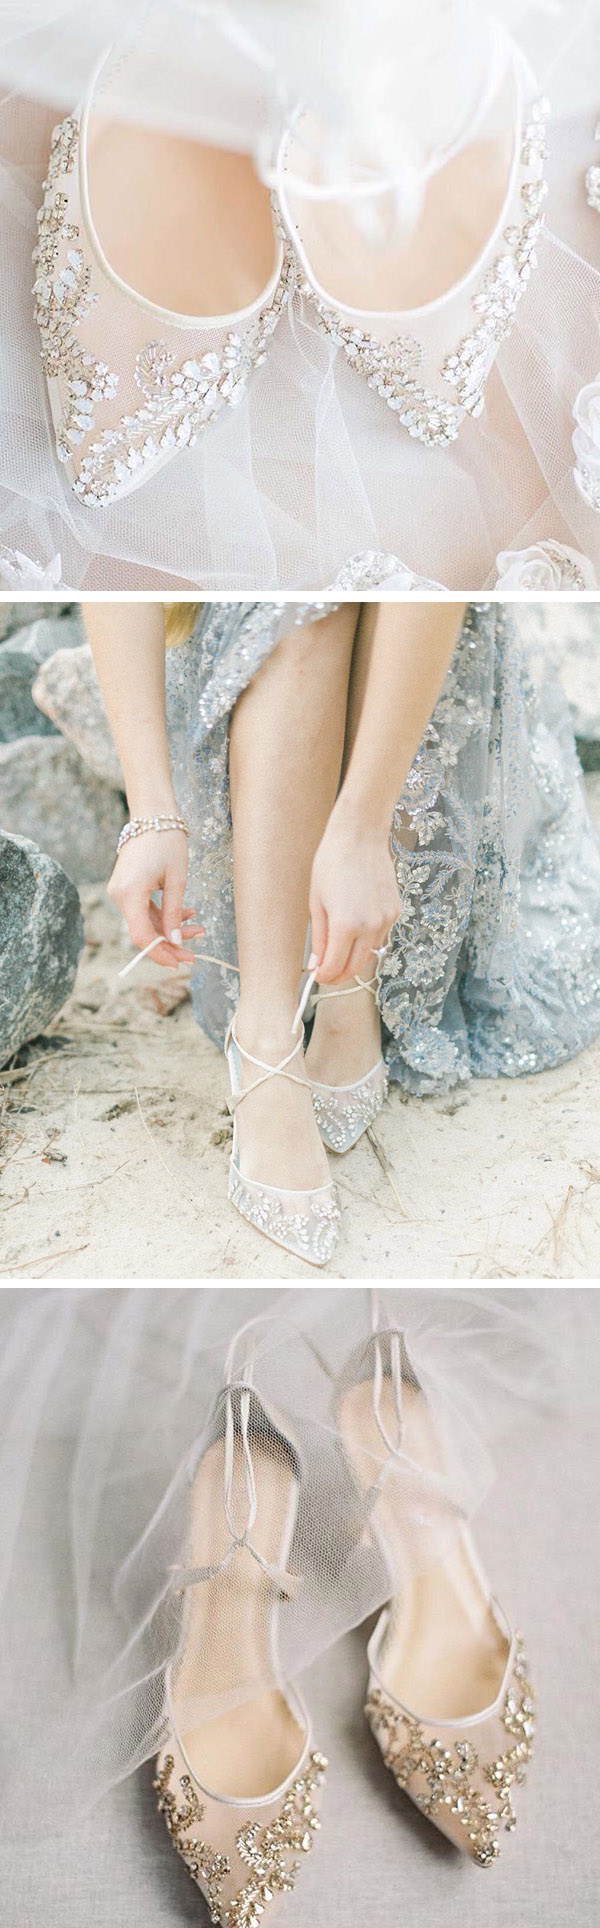 86c43cc3a1c6 Elegant glittery wedding shoes from Bella Belle shoes